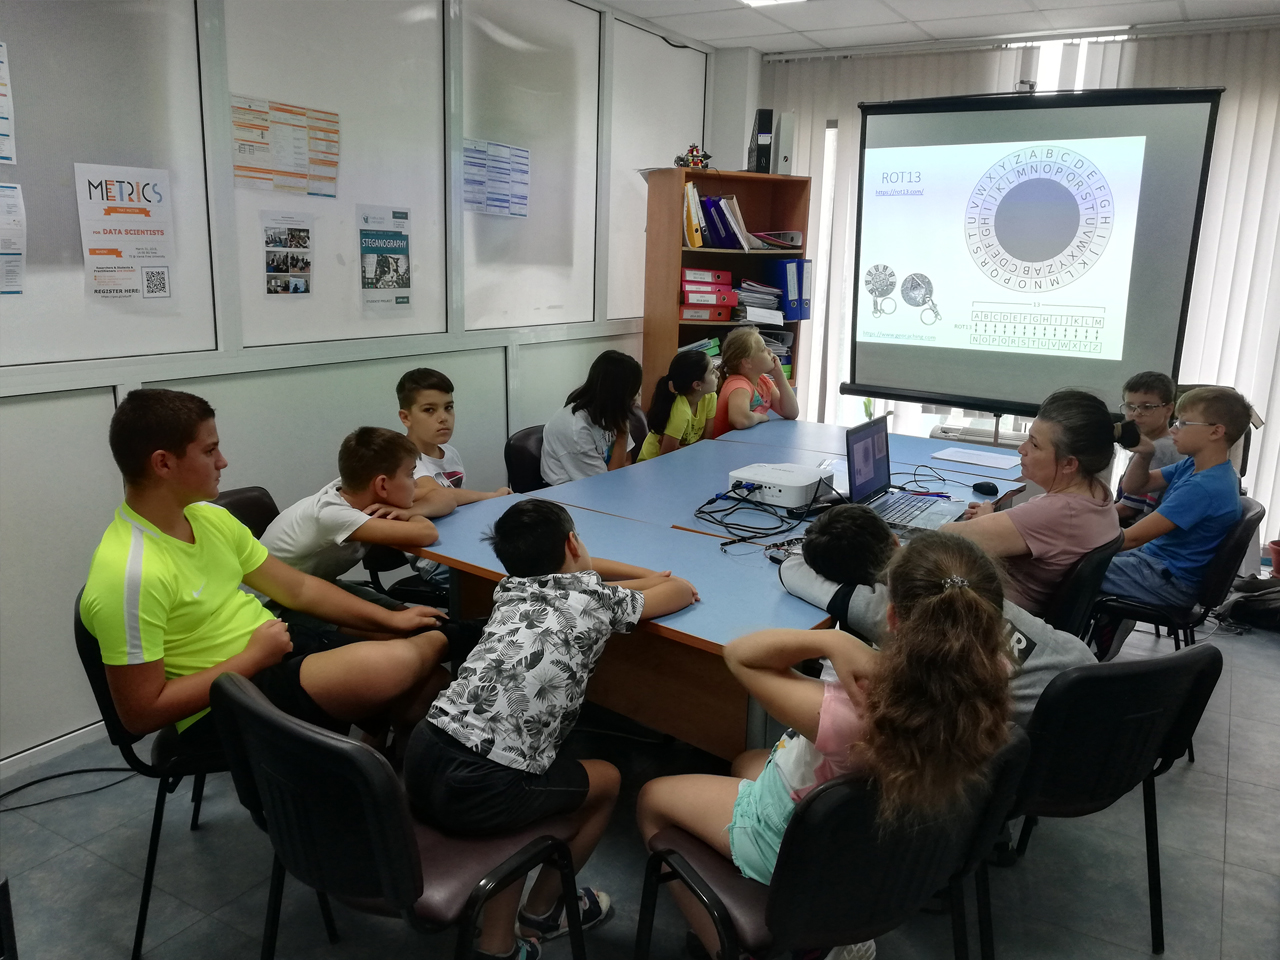 CyberSecurity for kids at varna free university